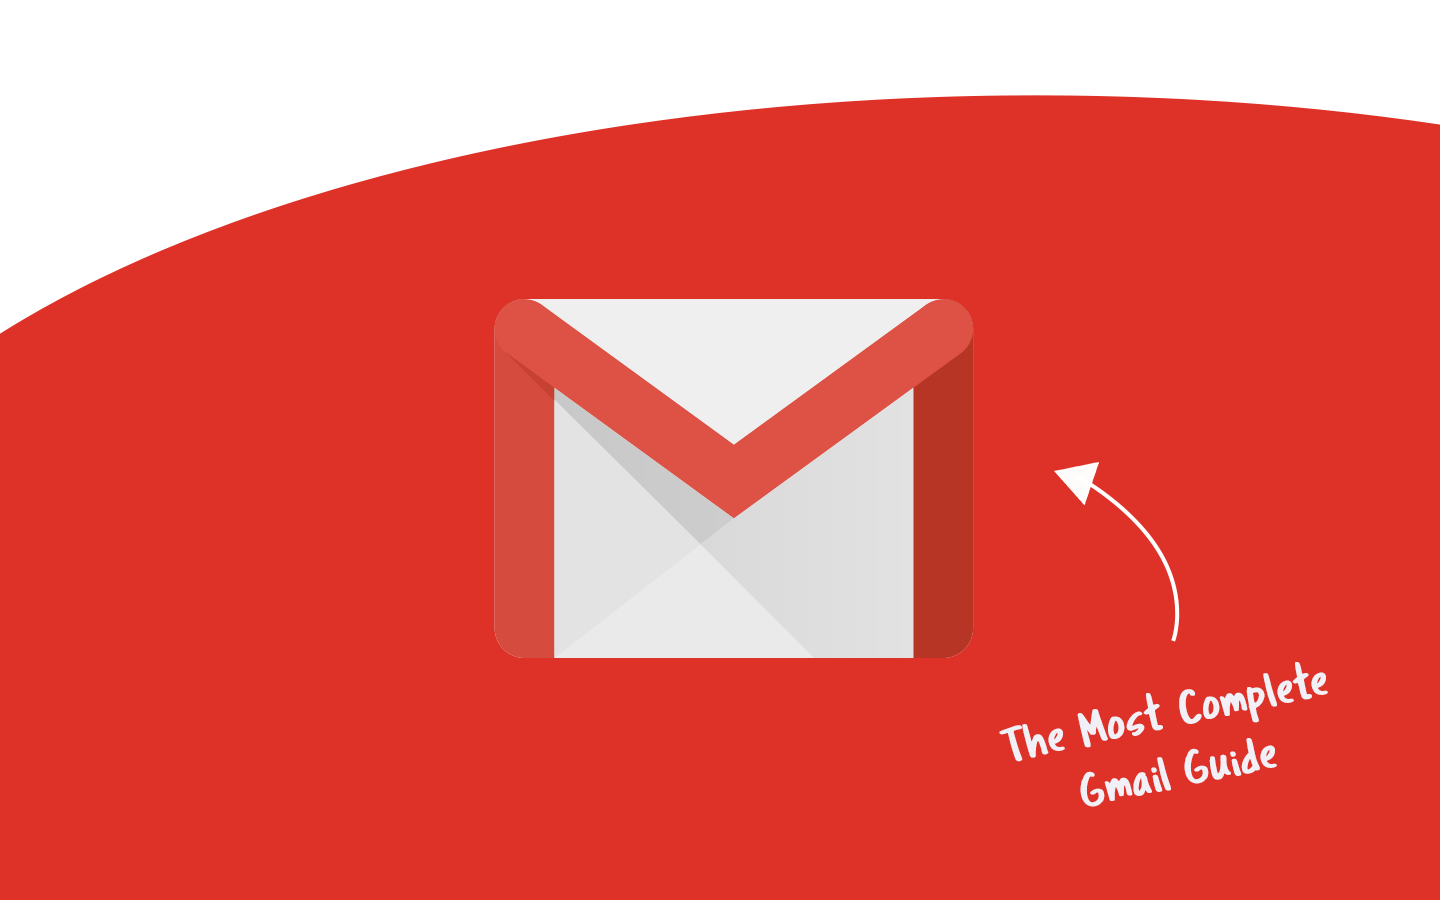 gmail guide